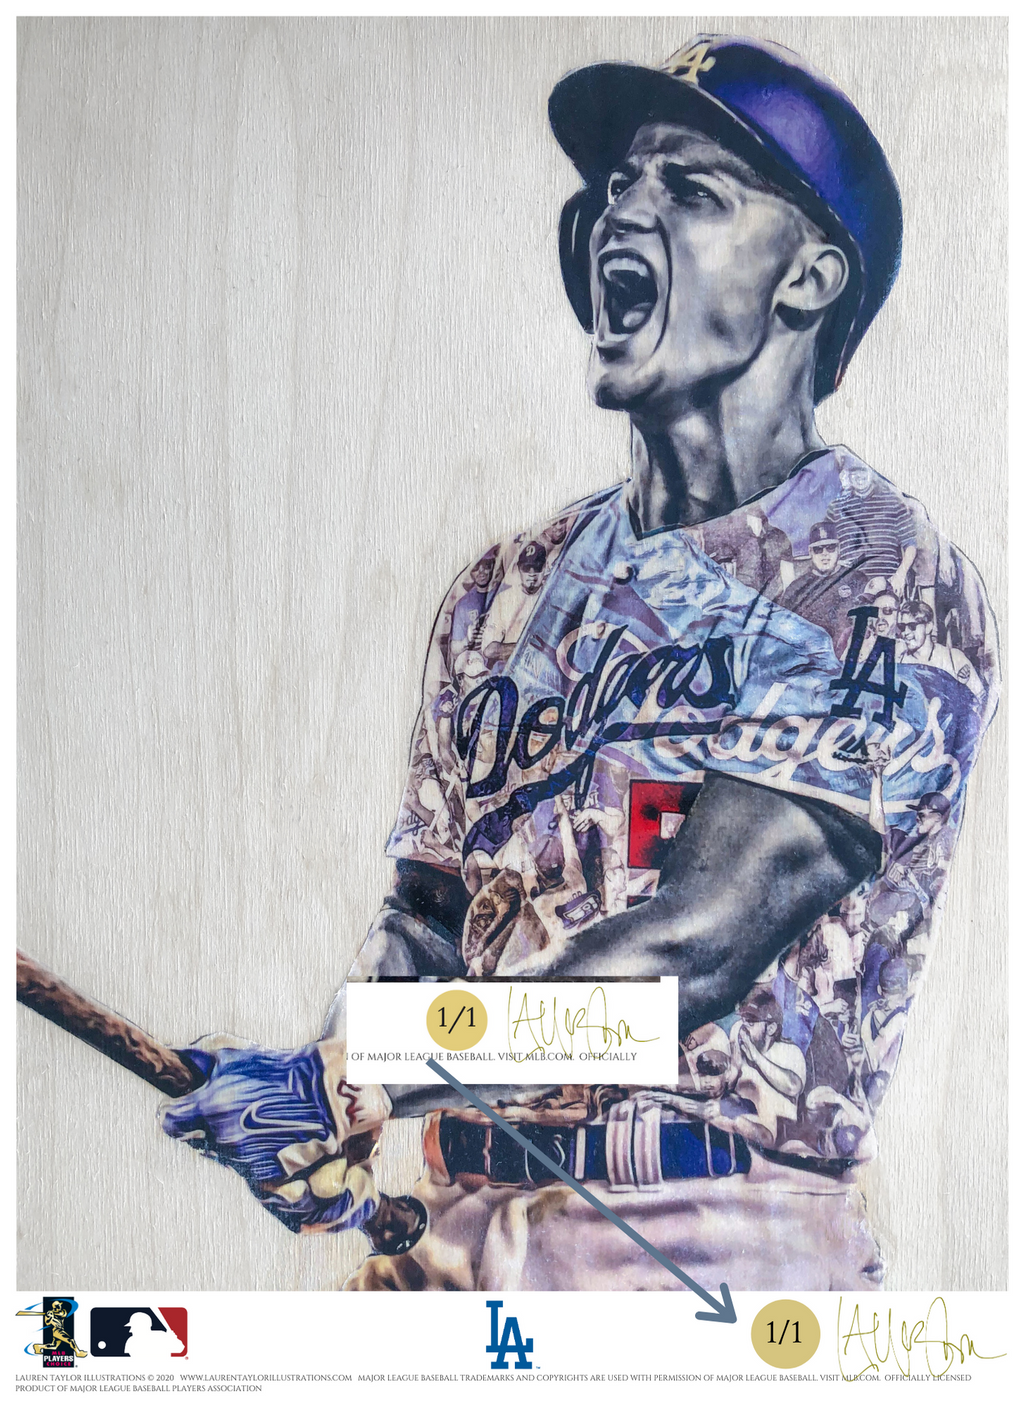 """C-Seag"" (Corey Seager) Los Angeles Dodgers - Officially Licensed MLB Print - GOLD SIGNATURE LIMITED RELEASE /1"